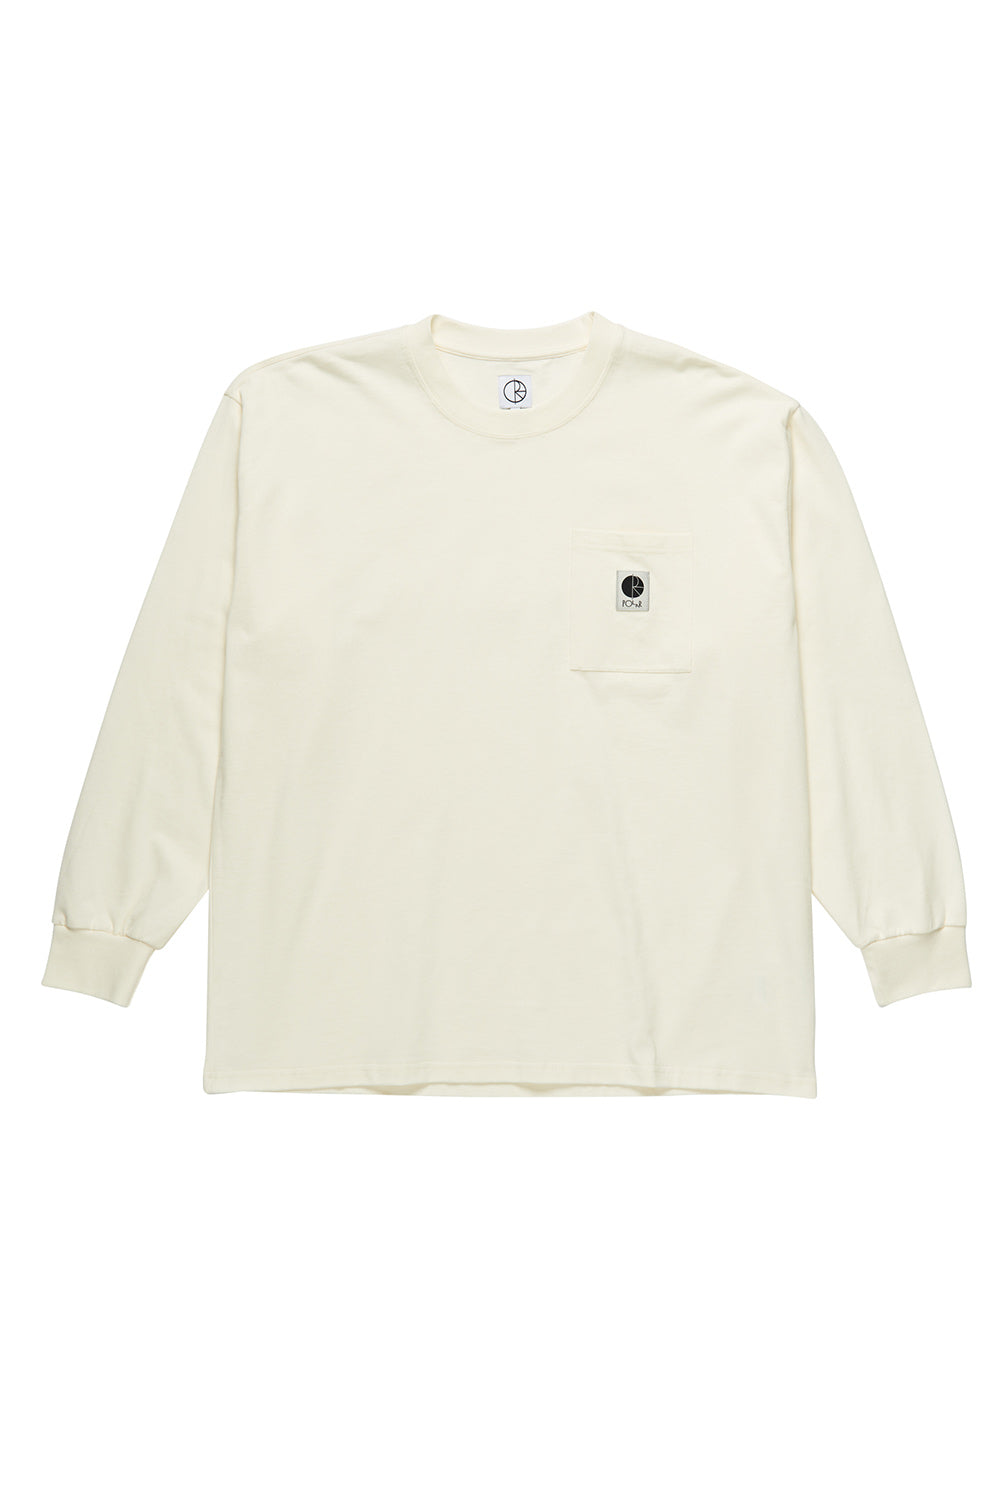 Polar Skate Co Pocket Longsleeve - Ivory | Buy Polar Skate Co Online